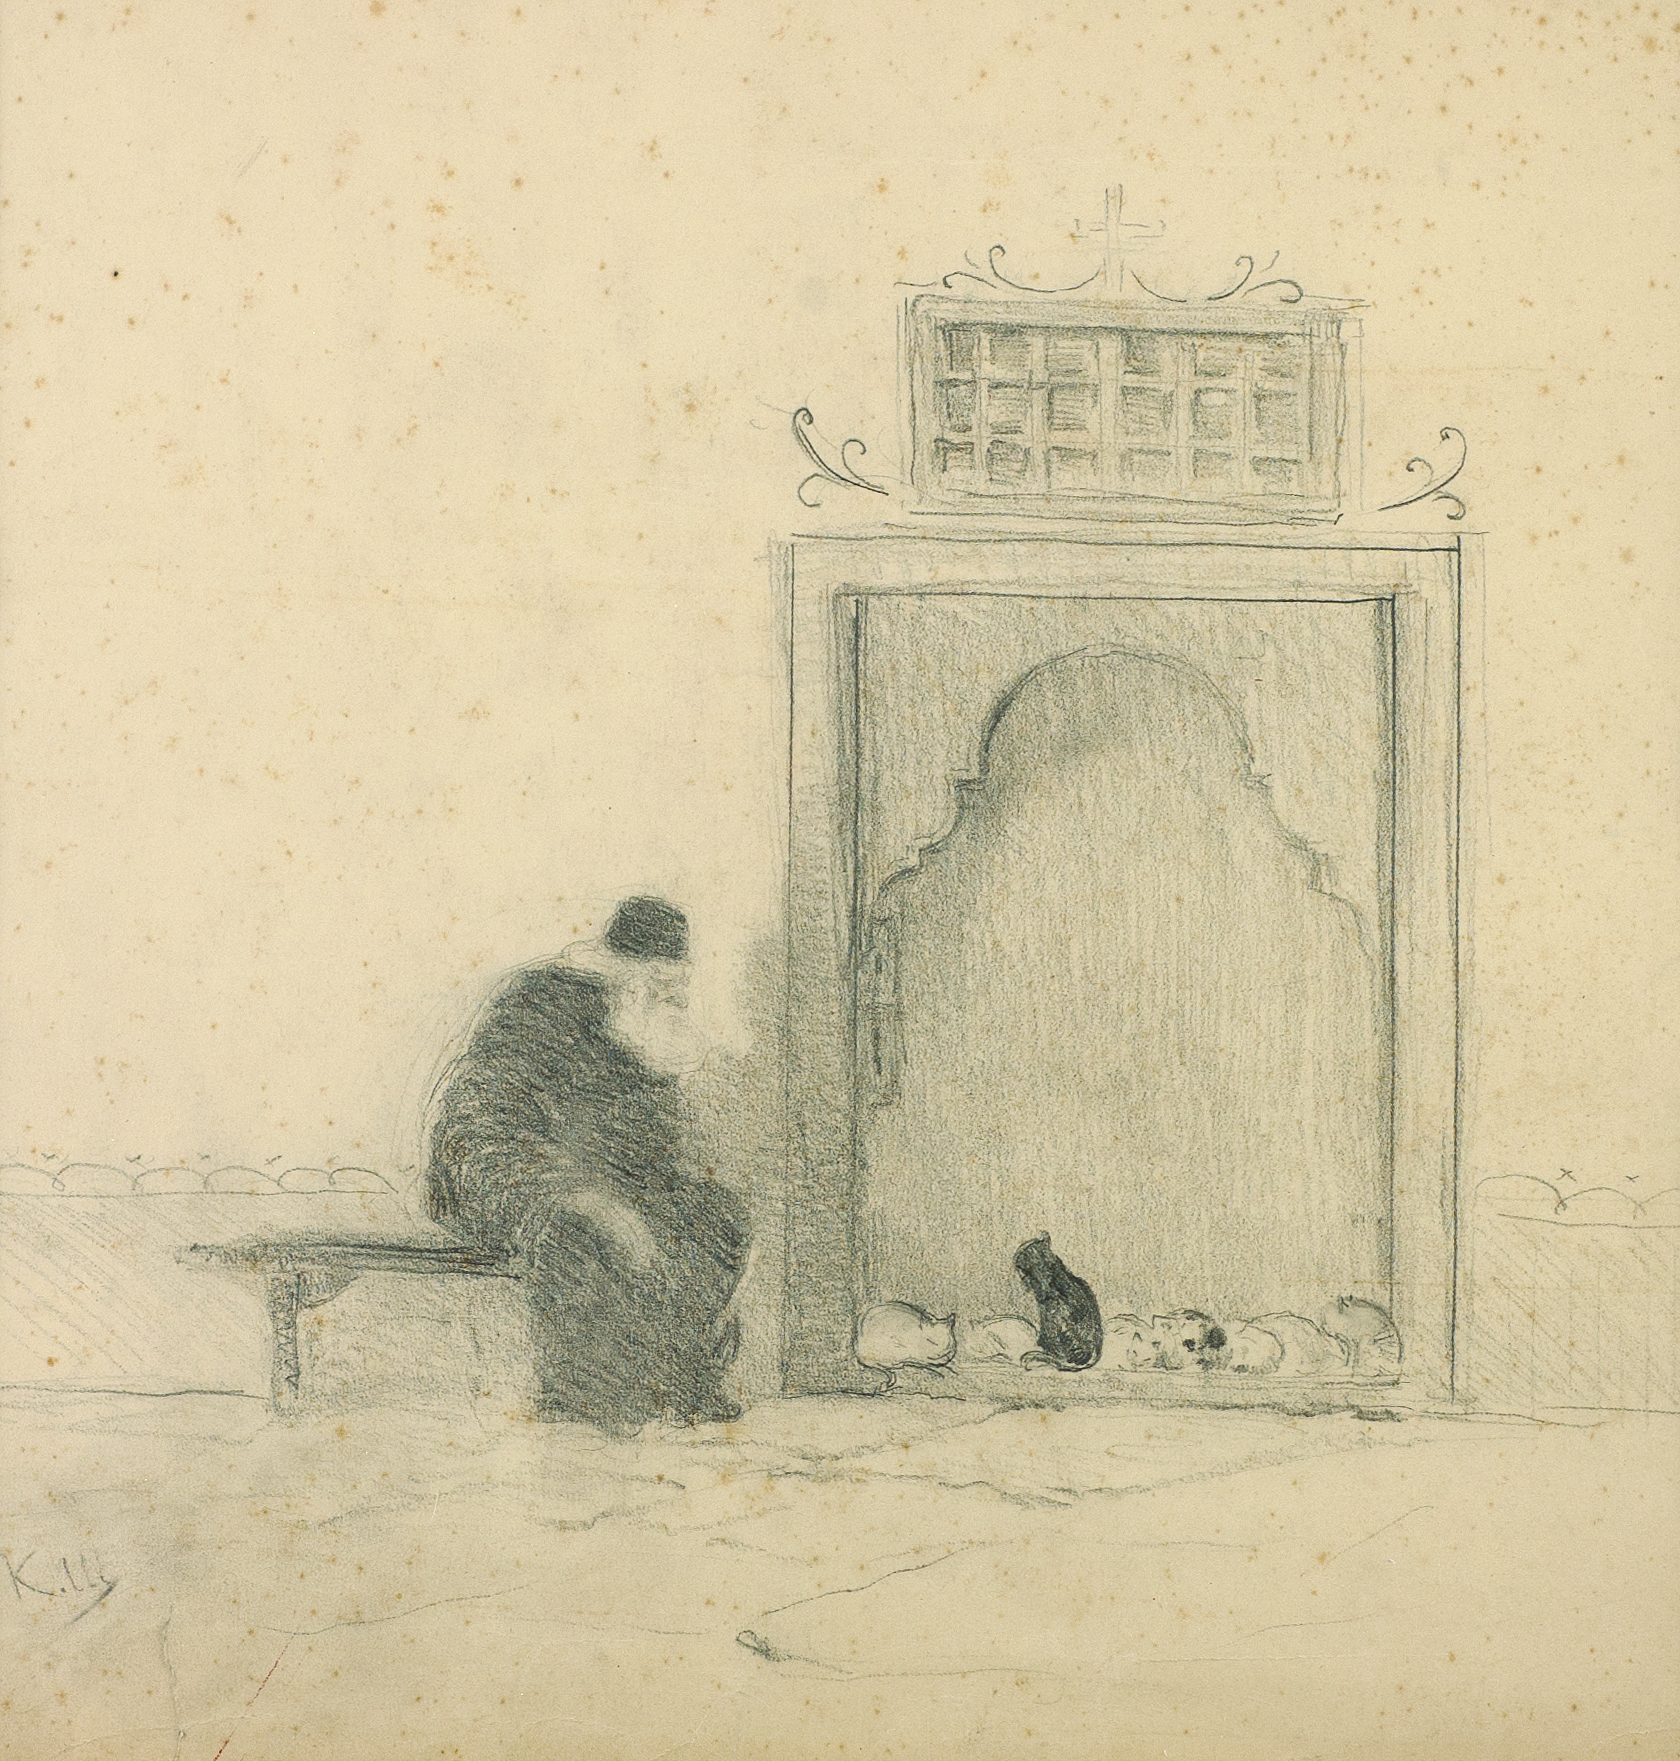 Monk with cats